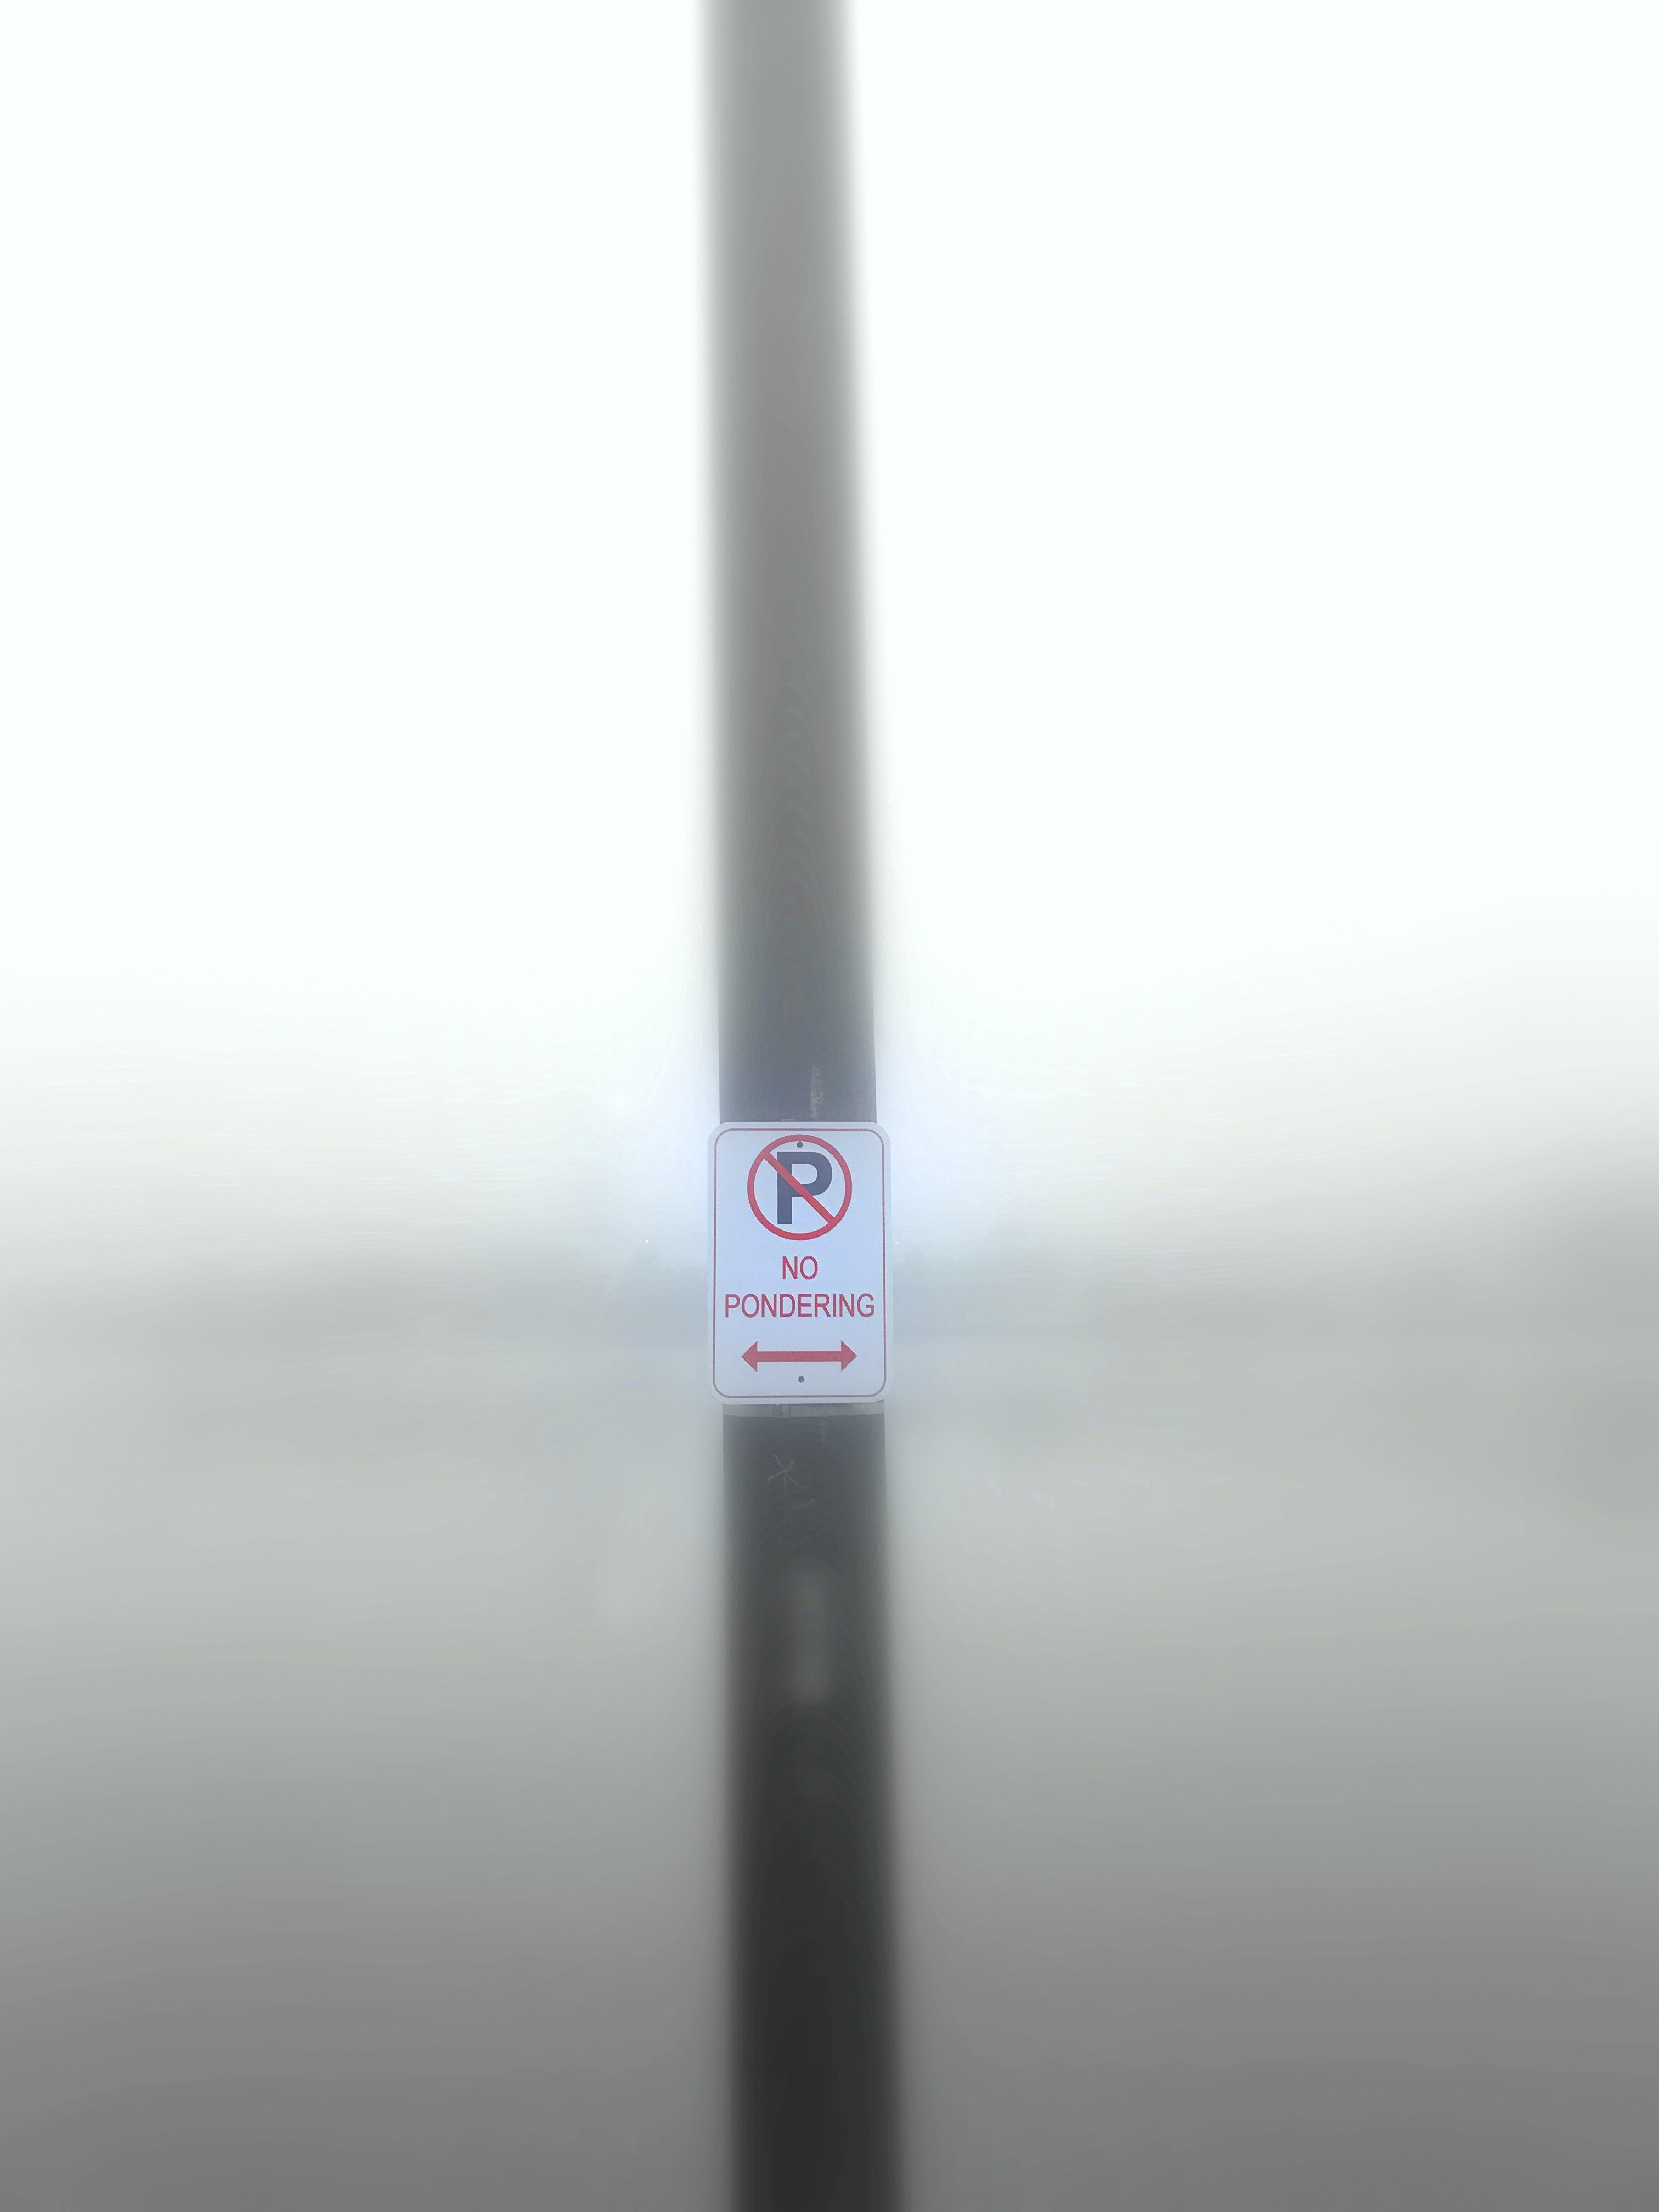 Photograph of my no pondering sign next to a heavily fogged bank